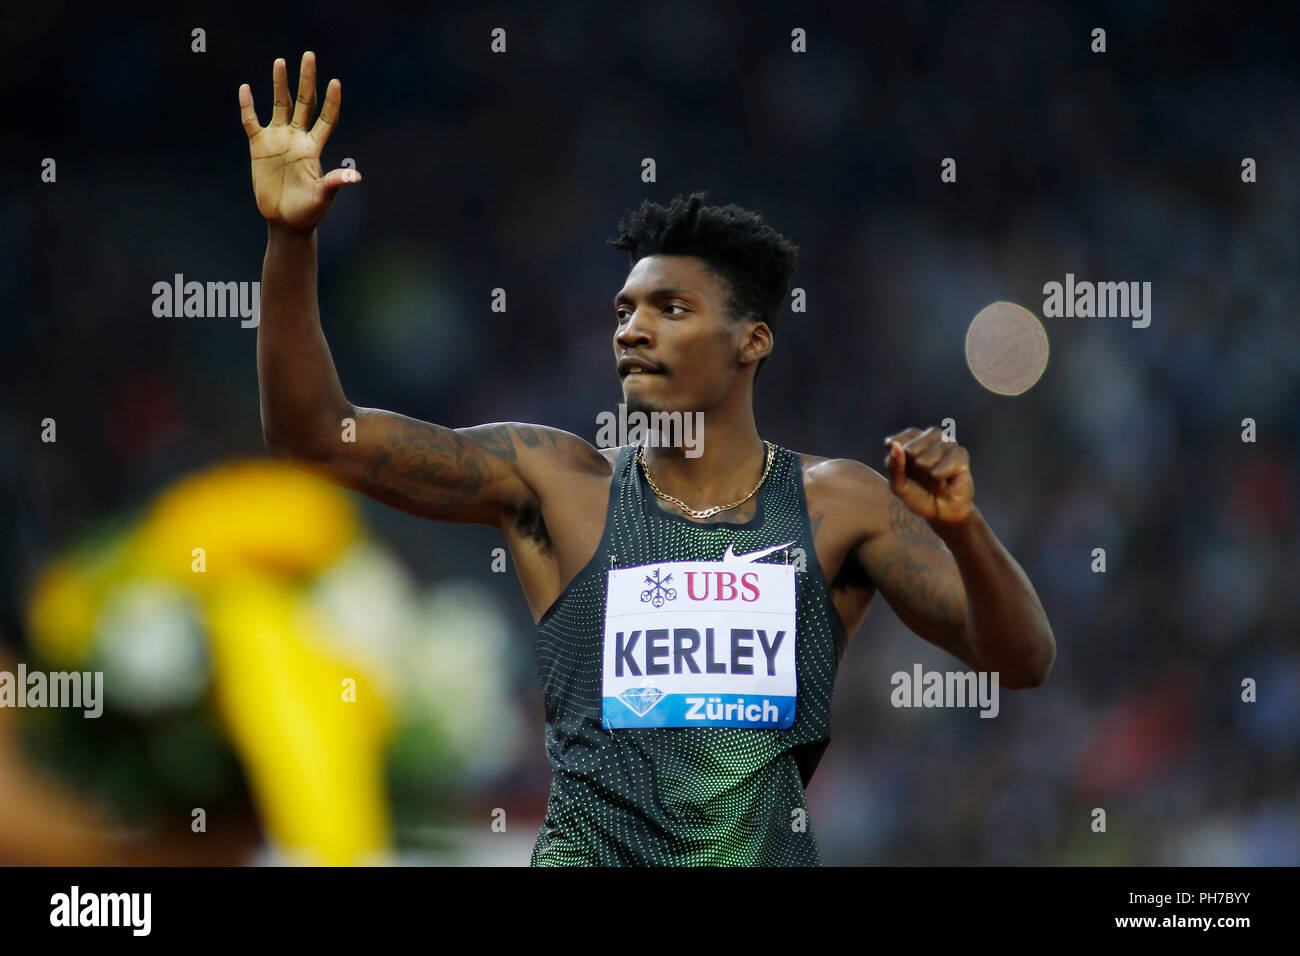 Zurich, Switzerland. 30th Aug, 2018. Fred Kerley of the United States reacts during the men's 400m at the IAAF Diamond League athletics meeting in Zurich, Switzerland, Aug. 30, 2018. Fred Kerley claimed the title in a time of 44.80 seconds. Credit: Michele Limina/Xinhua/Alamy Live News - Stock Image